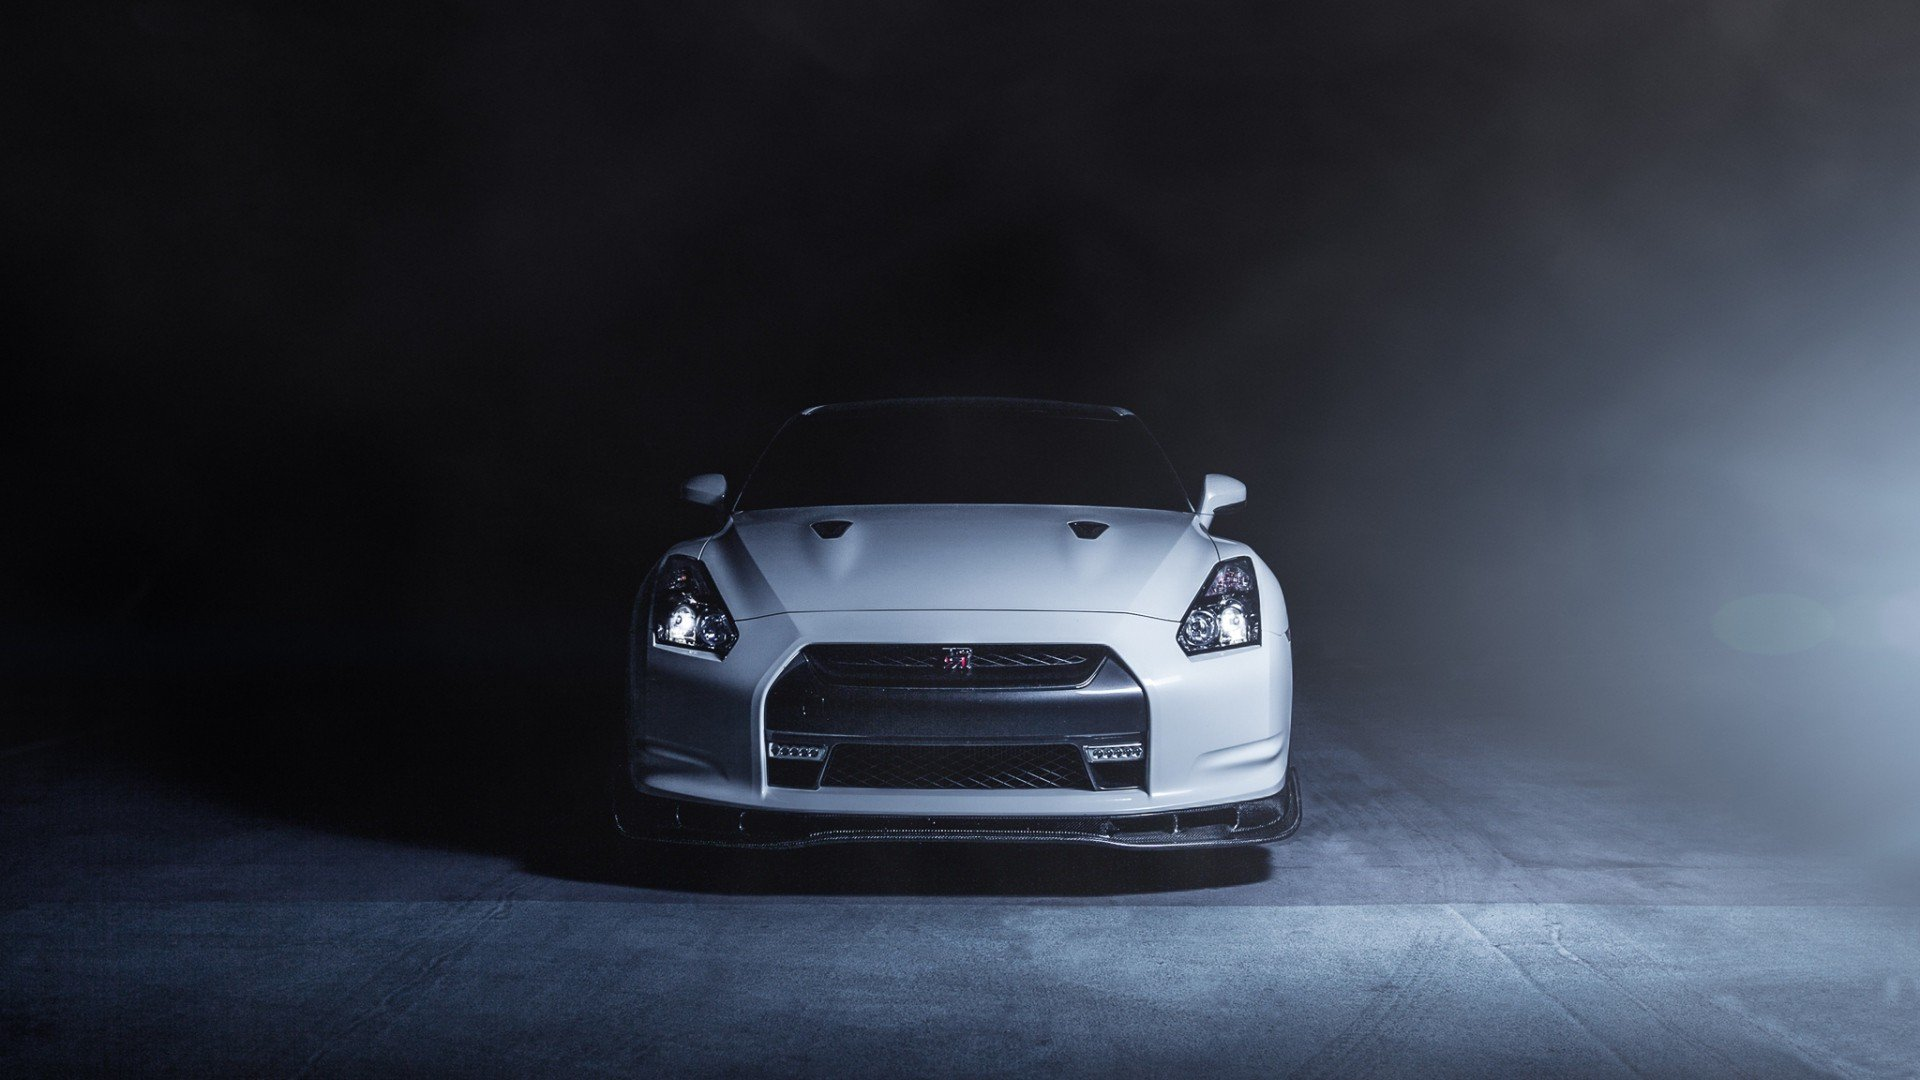 Nissan GTR R35, HD Cars, 4k Wallpapers, Images ...